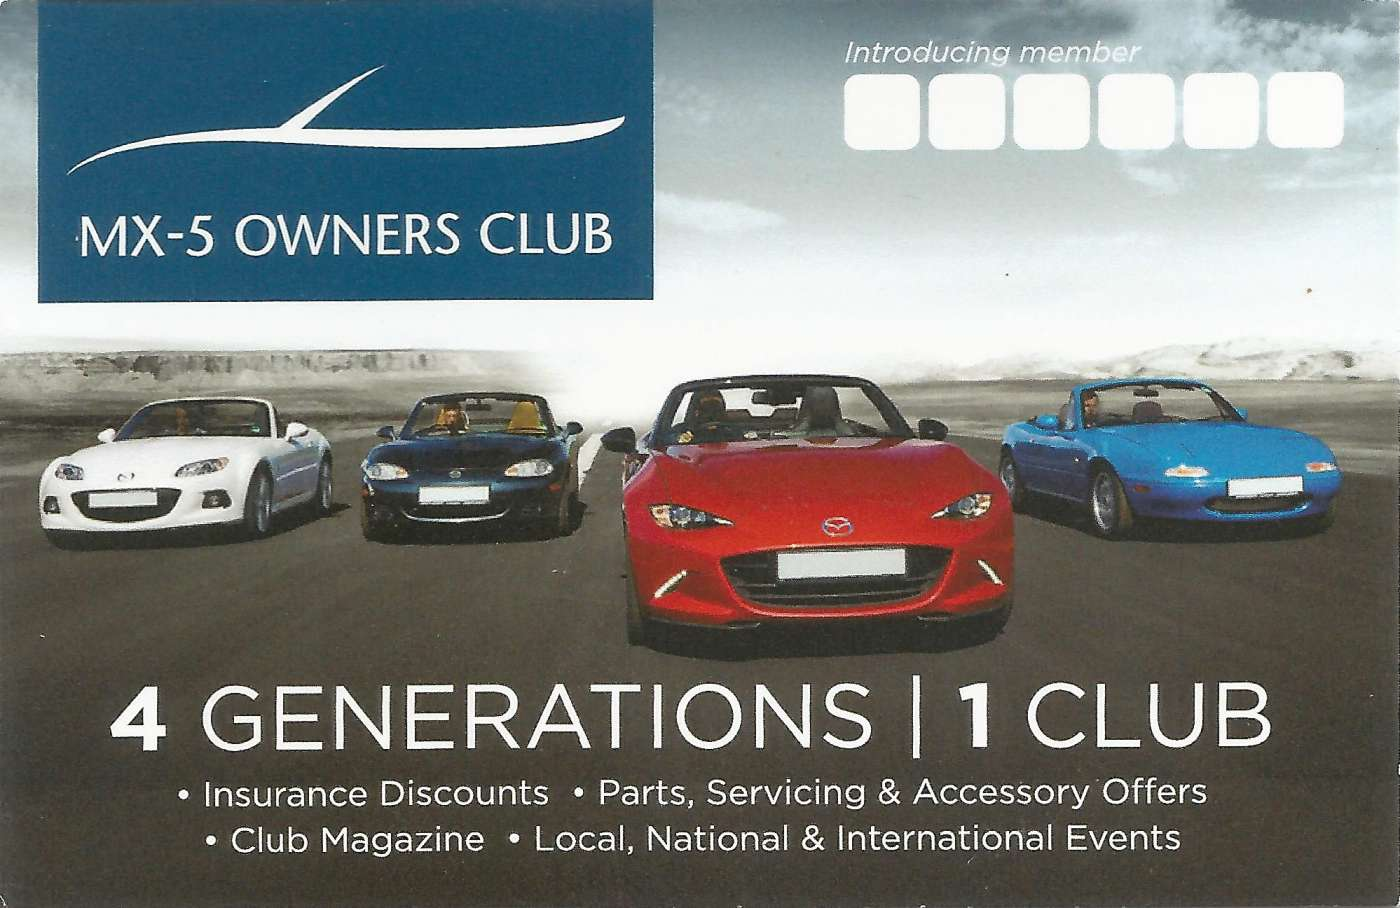 Have You An MX-5? The Channel Islands MX-5 Club Are Having An Open Meeting